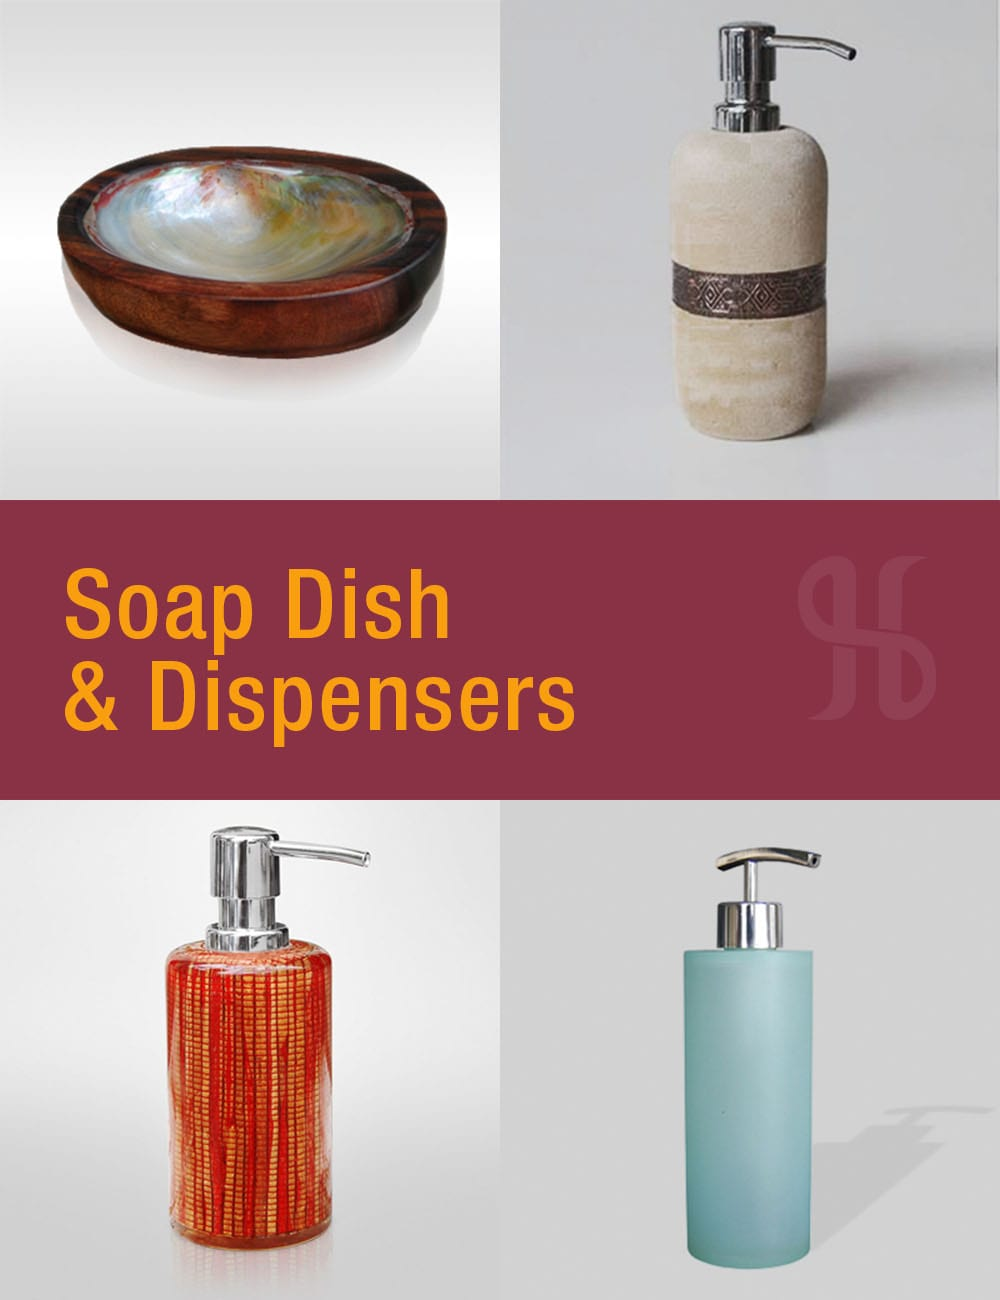 Soap Dish and Dispensers